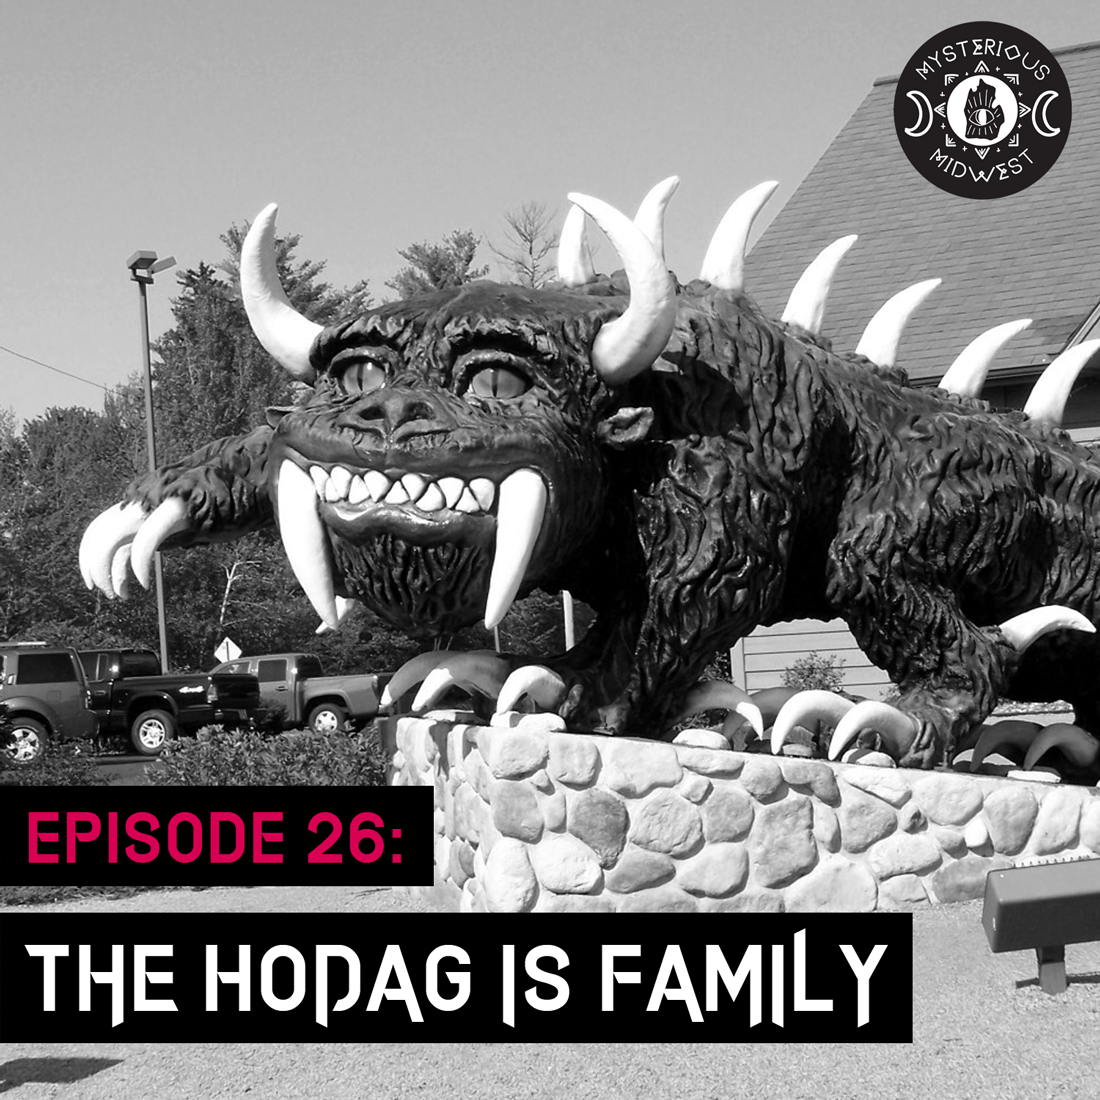 Episode 26: The Hodag is Family